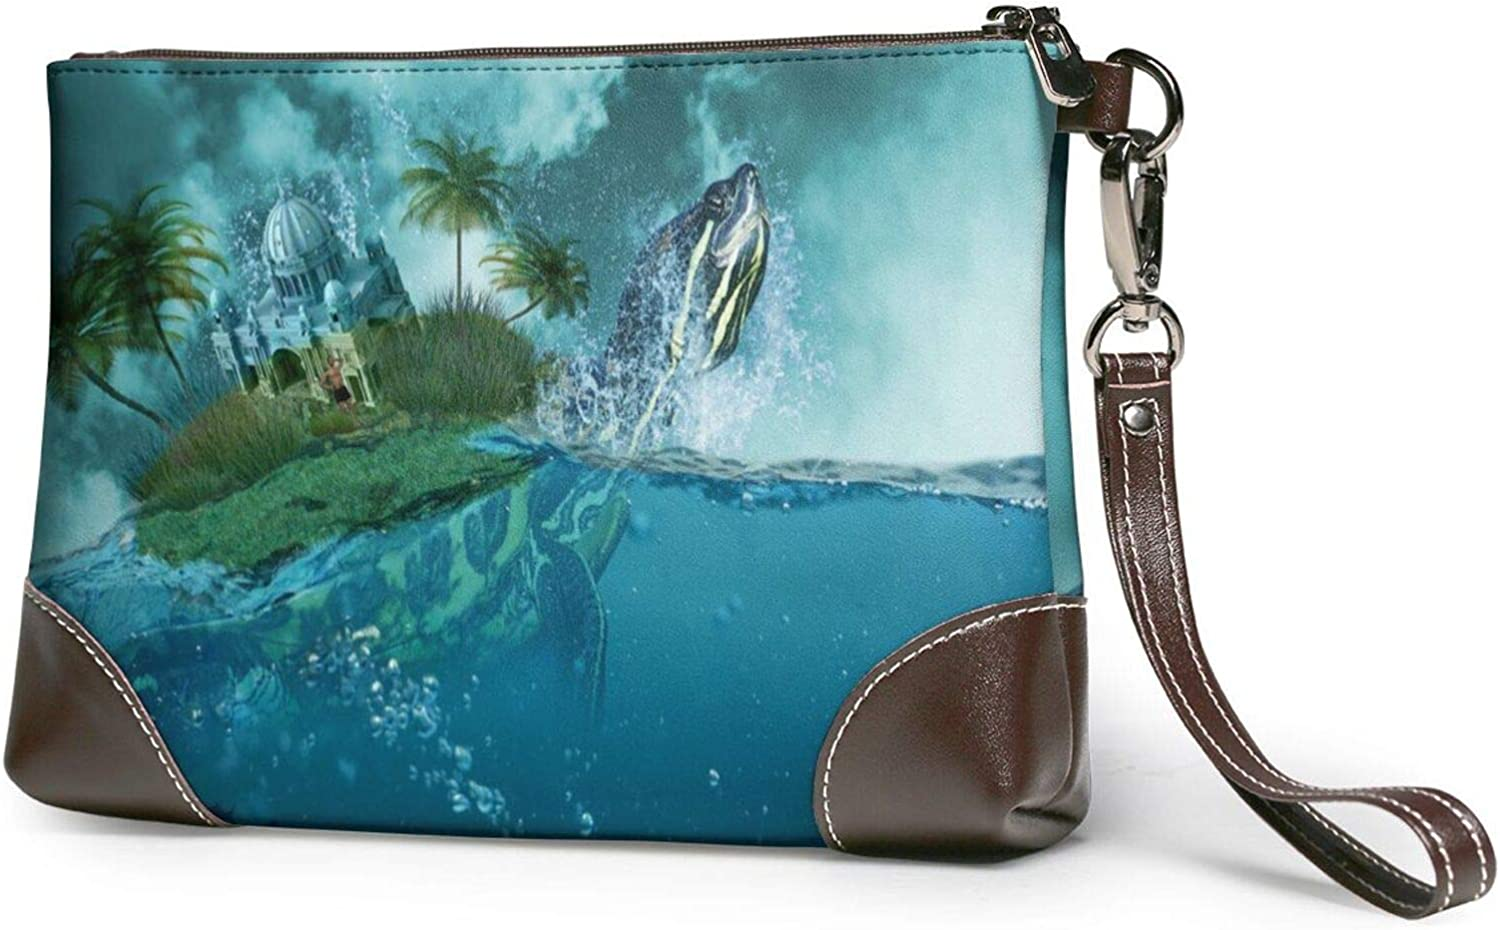 Imagine Sky And Sea Clutch Leather Wallet 2021new shipping free Purses Wristlet Now free shipping